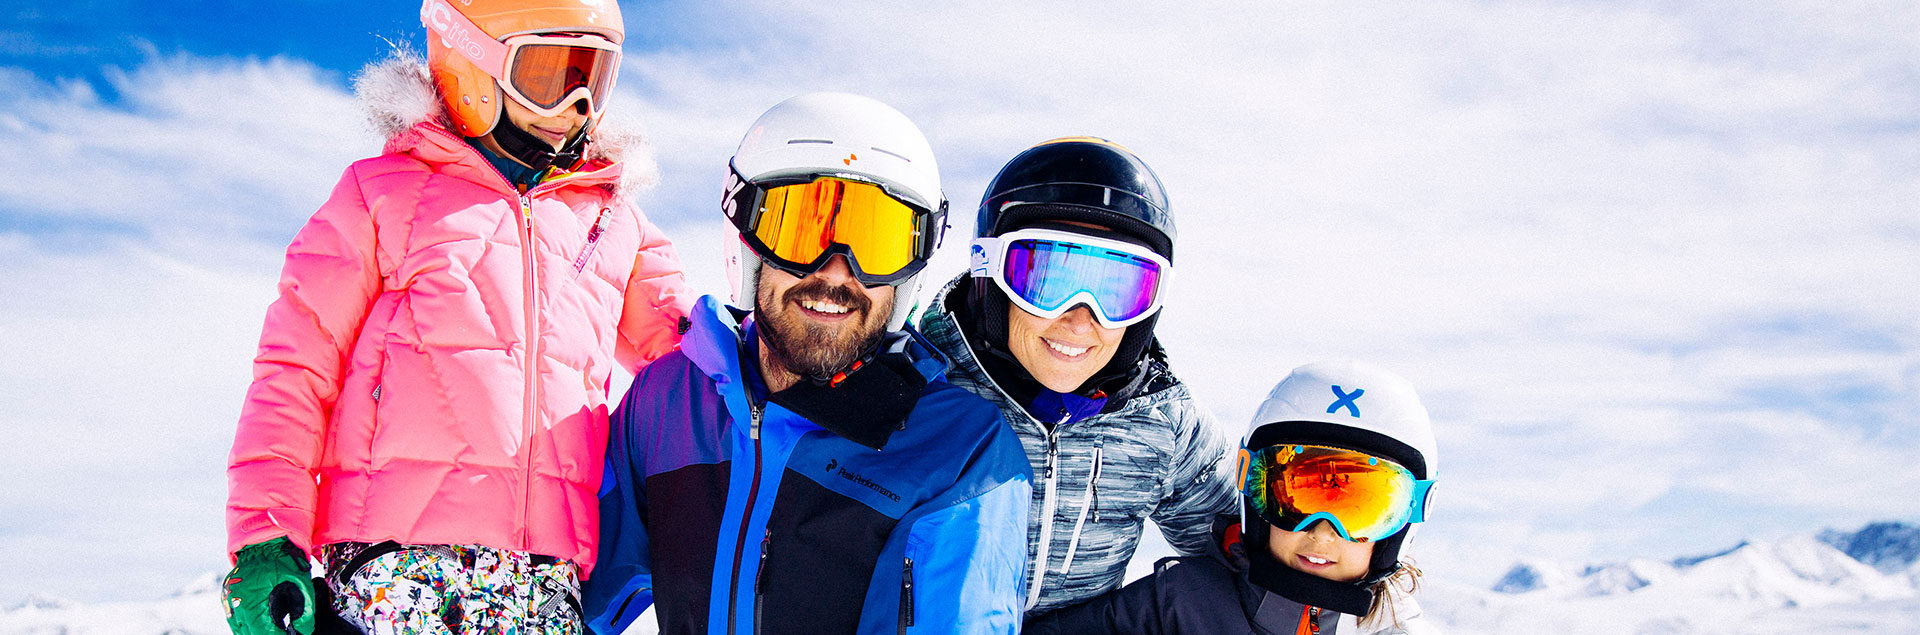 luxury accommodation with grandvalira skipass included